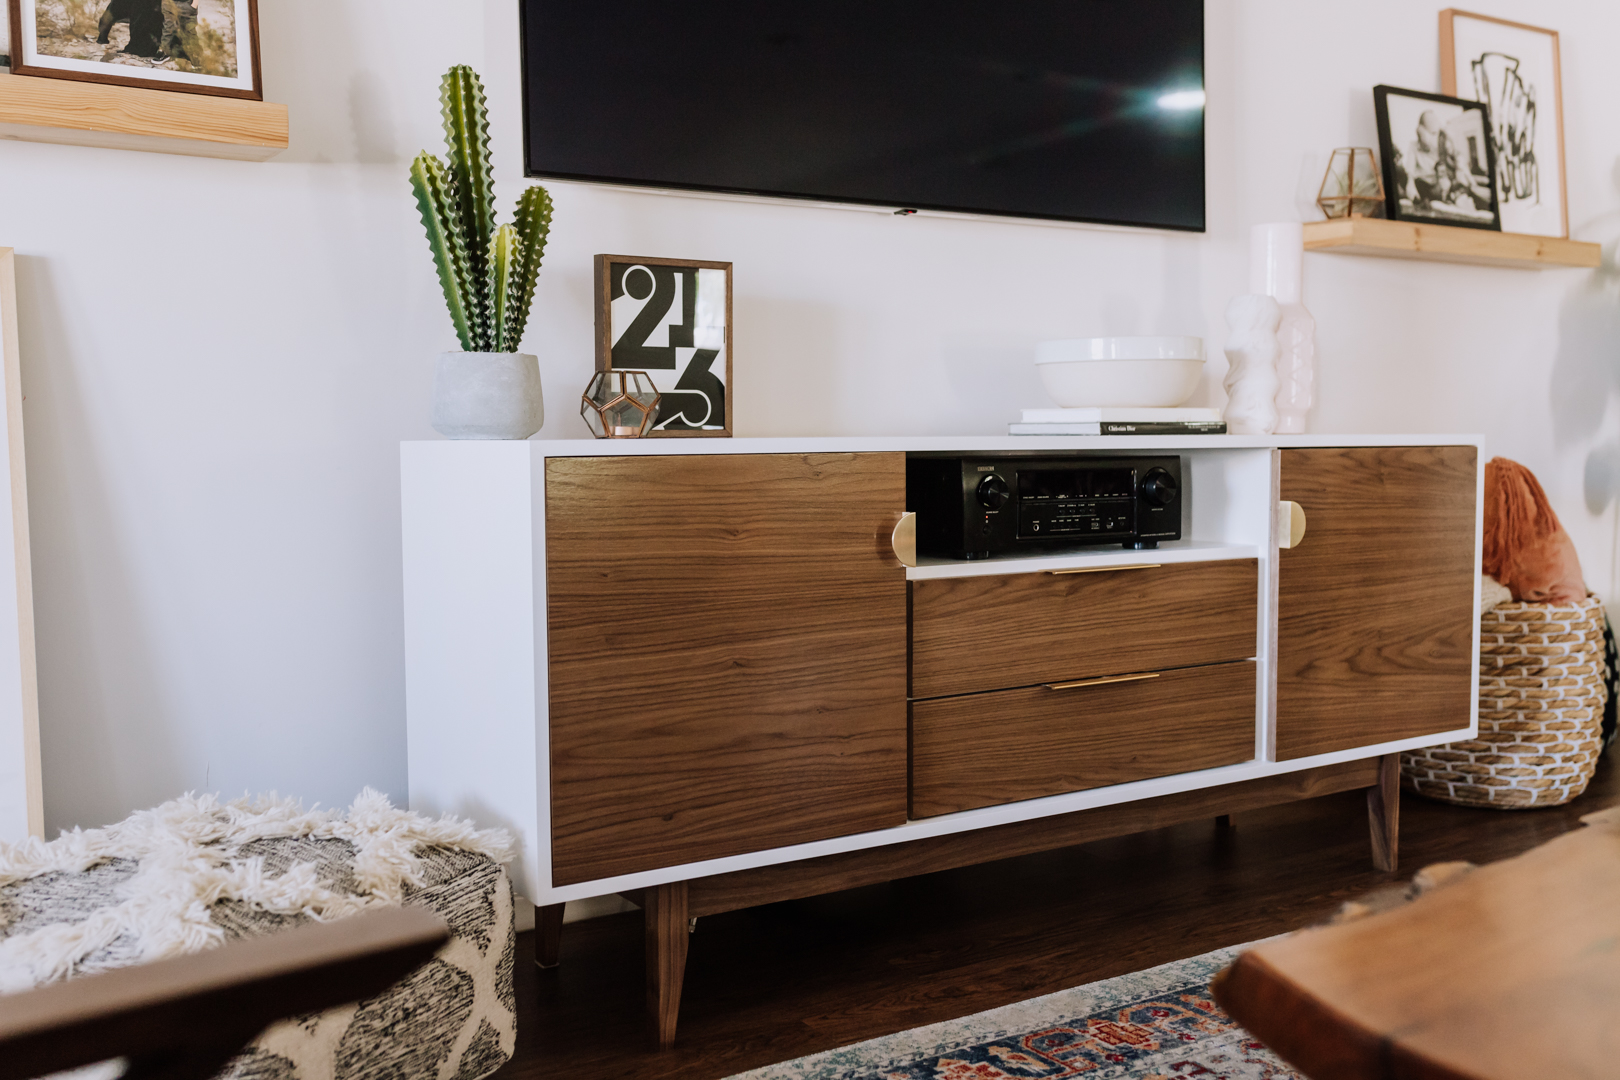 ove this new custom media cabinet from draftwood designs in phoenix, az | thelovedesignedlife.com #theldlhome #livingroom #customfurniture #mediacabinet #midcenturymodern